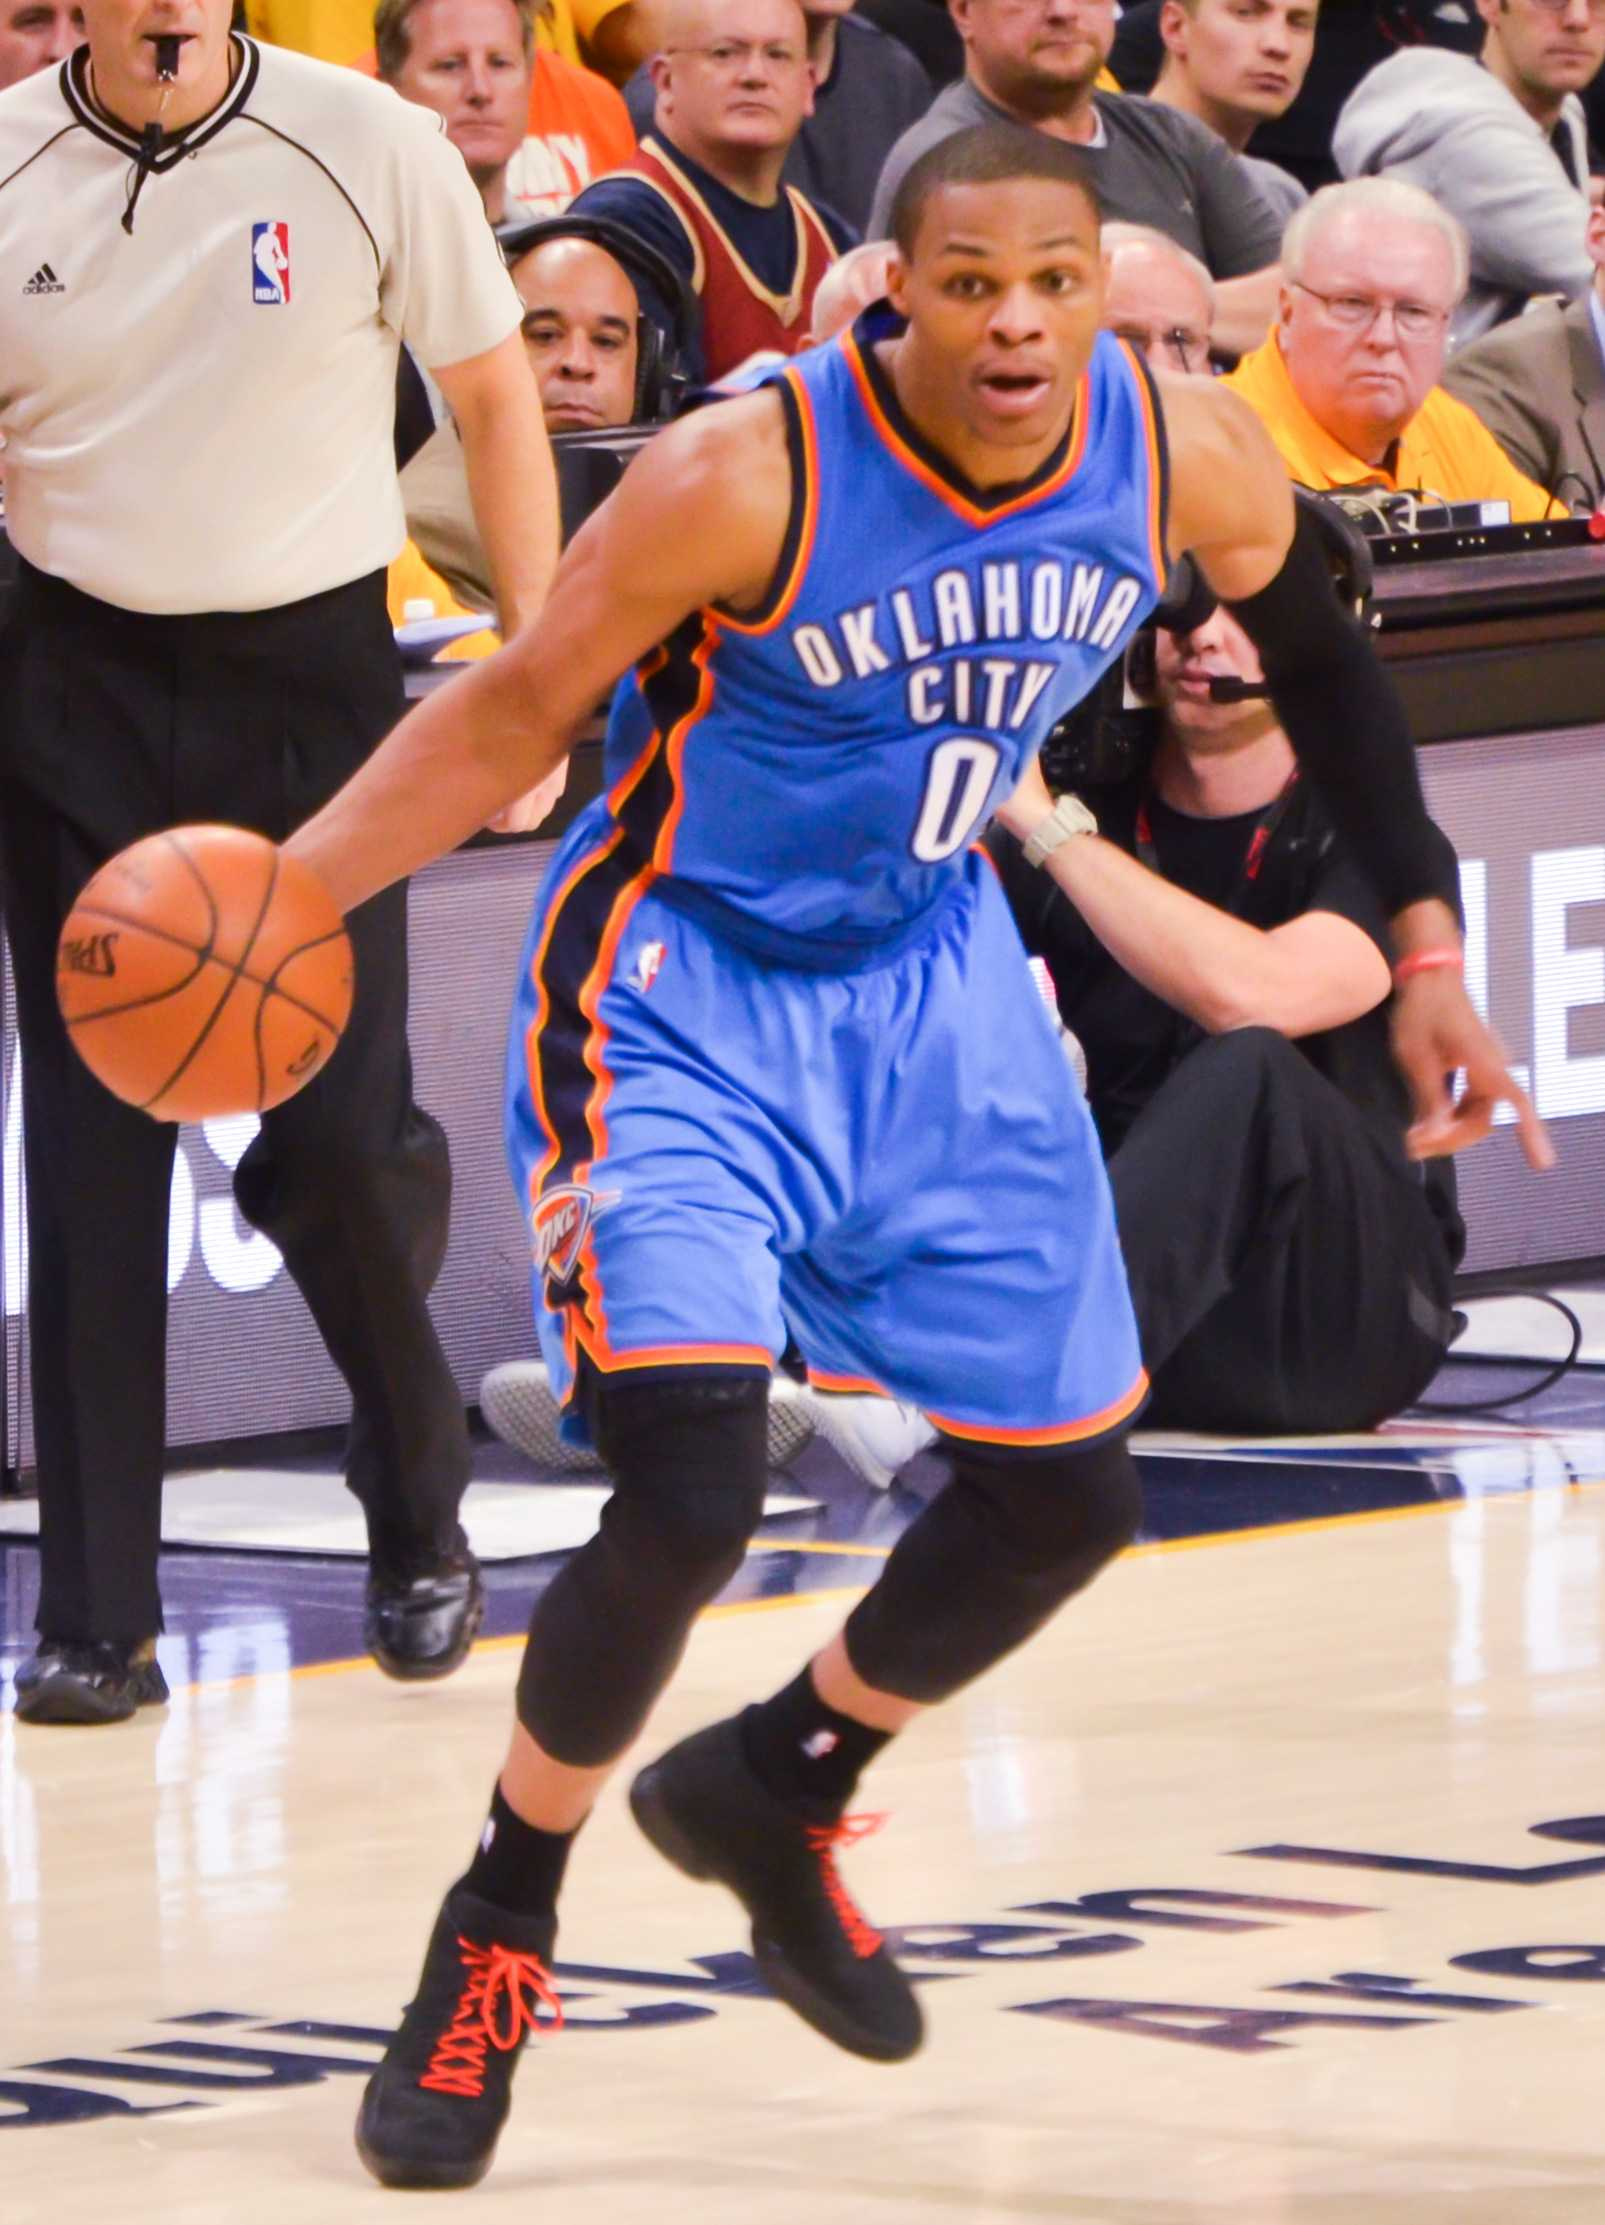 Westbrook is averaging a triple double this year, but was wasn't voted an All-Star starter.